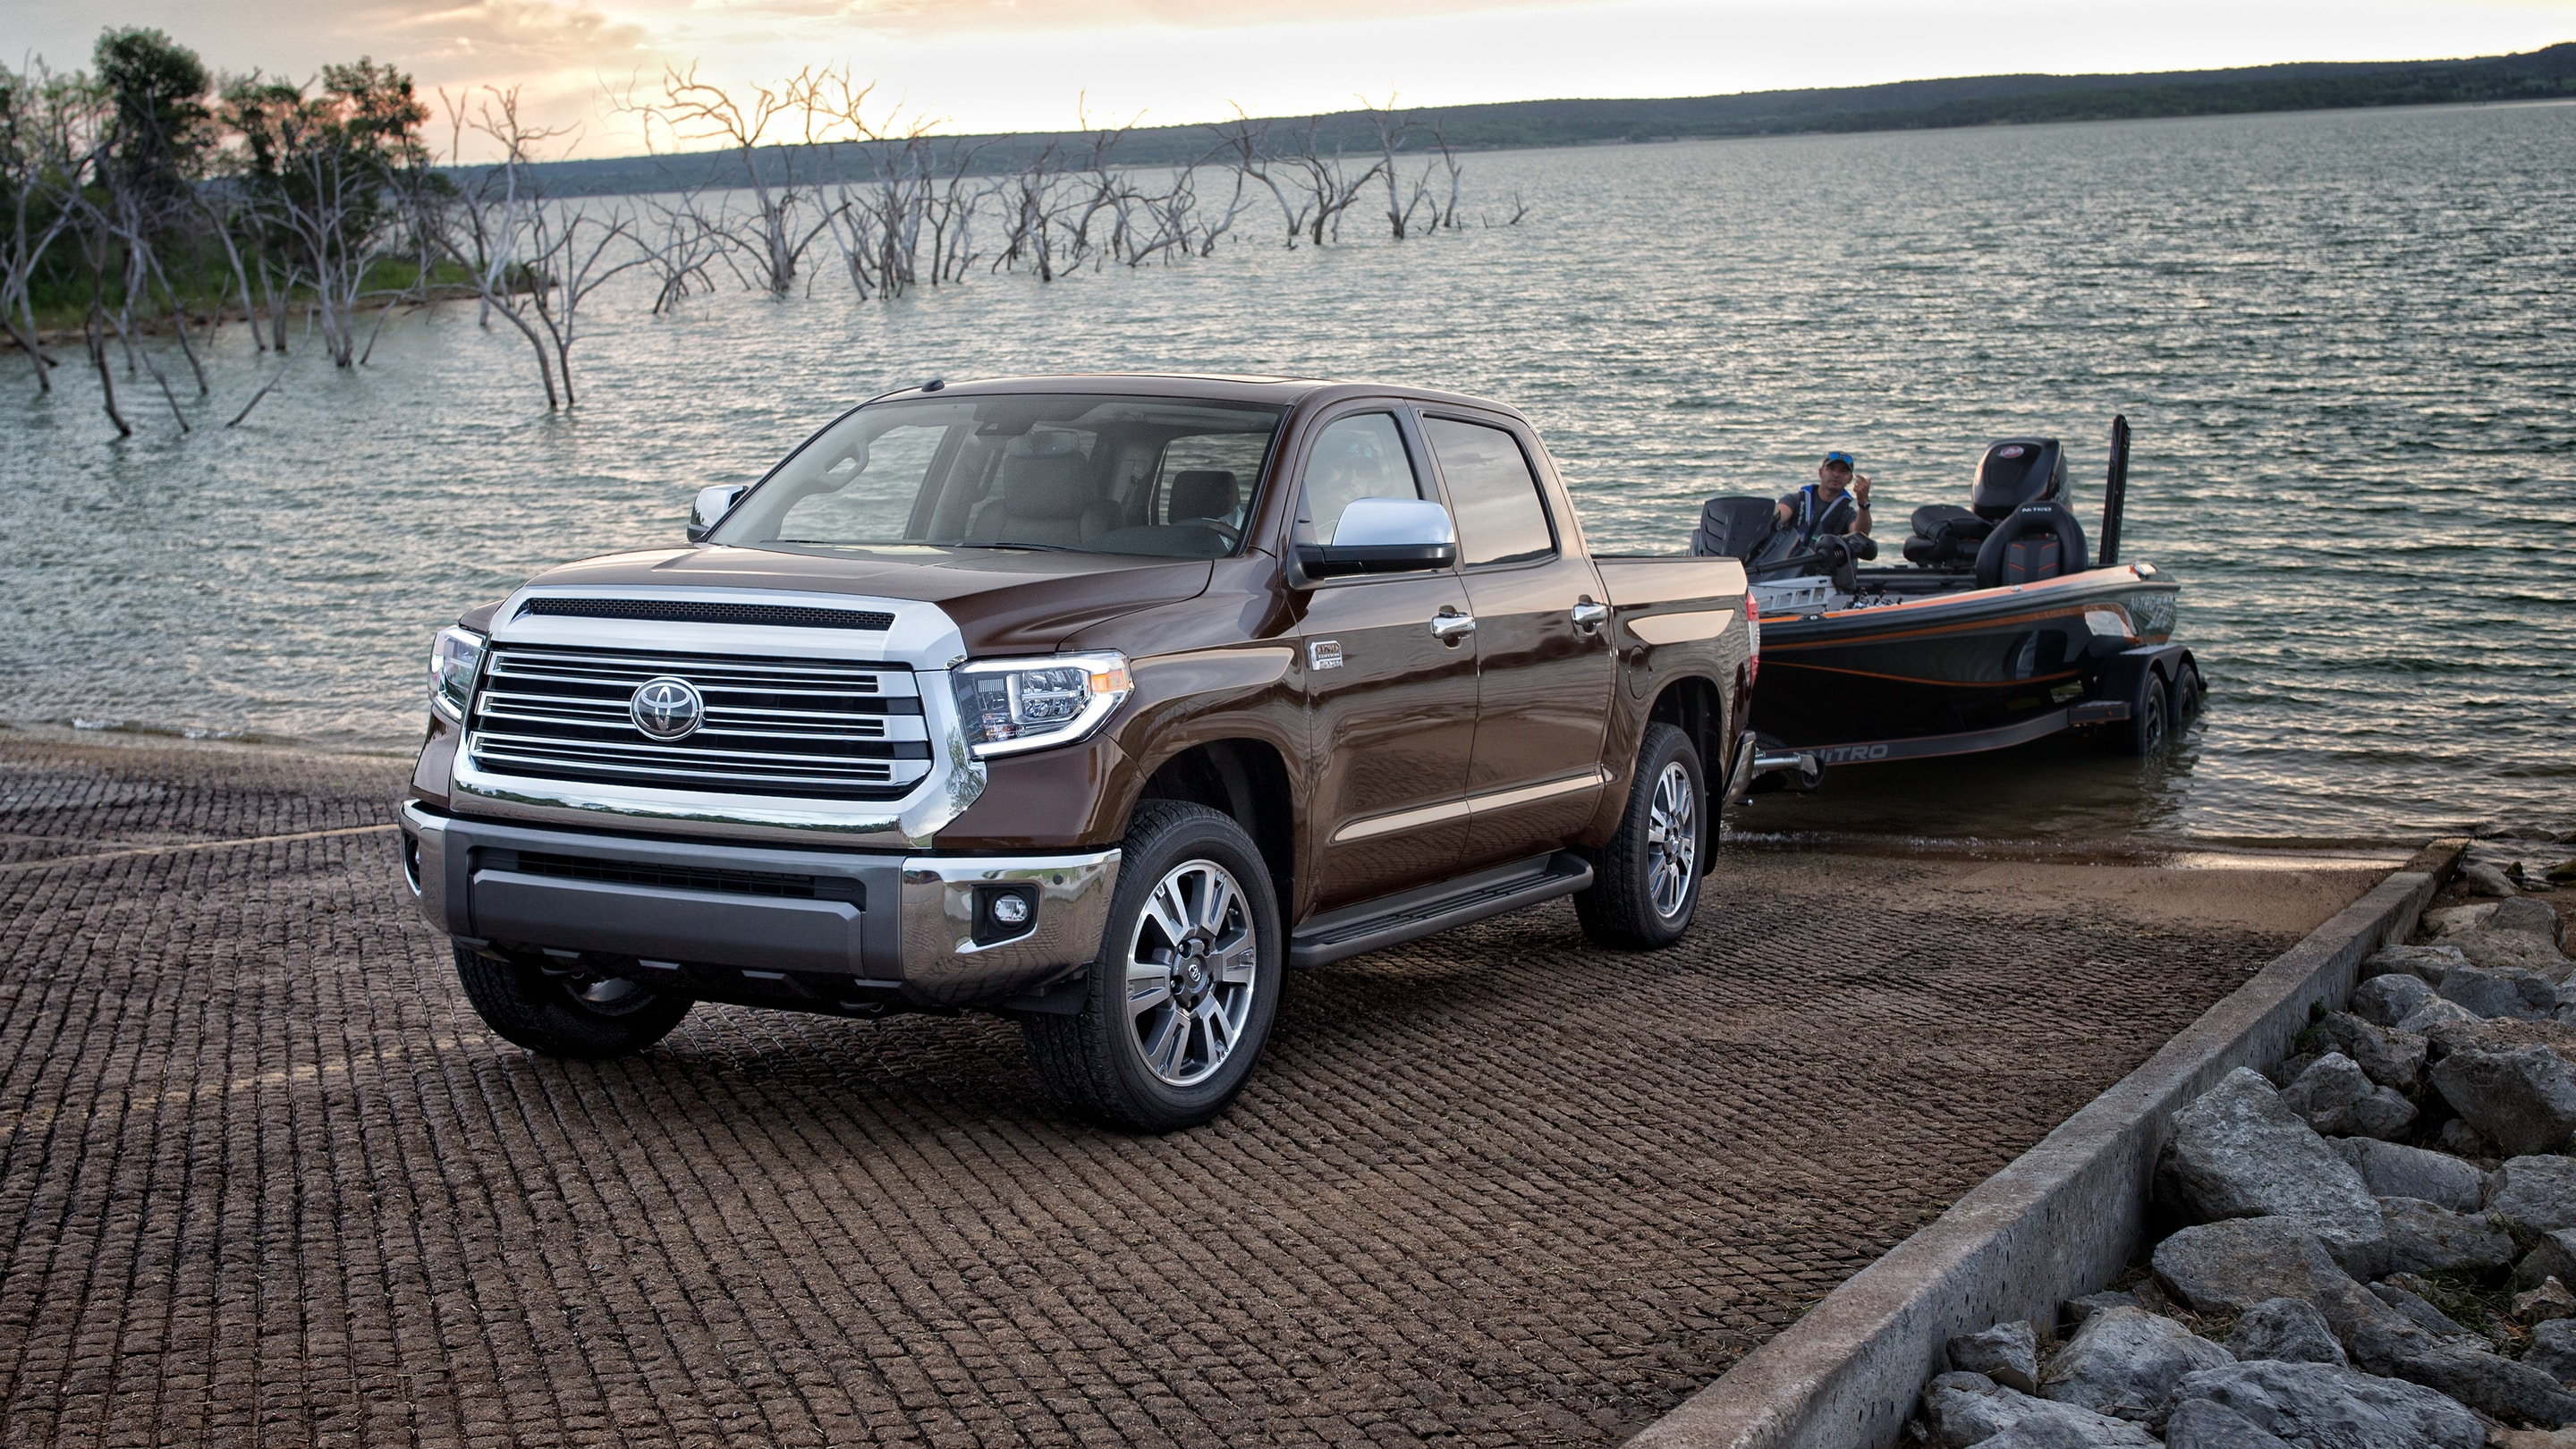 Take Your Boat out of the Shed More Often with the Tundra